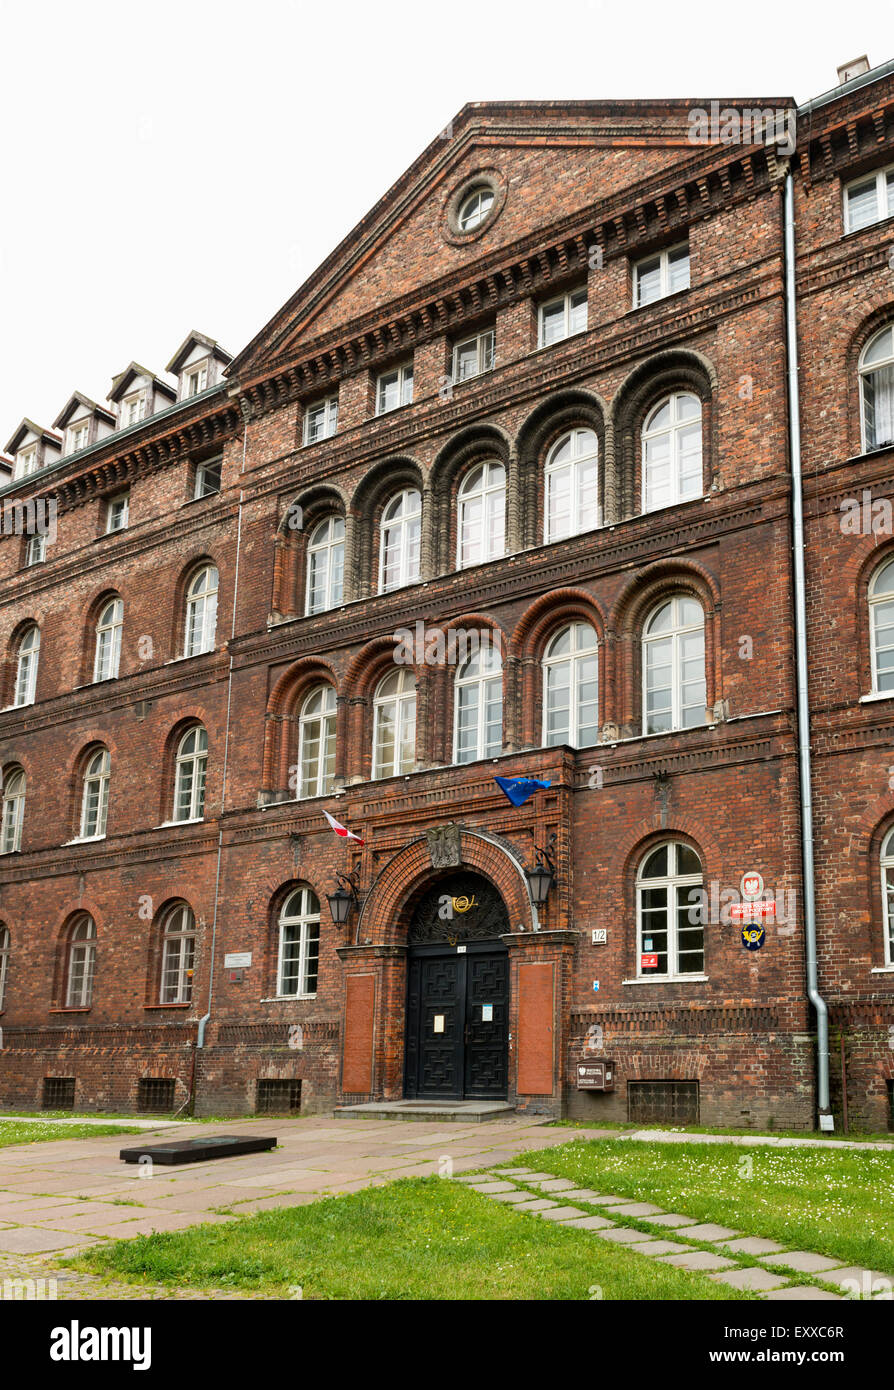 The Polish Post Office building, now also a museum in Gdansk where the first shots of World War Two were fired, - Stock Image